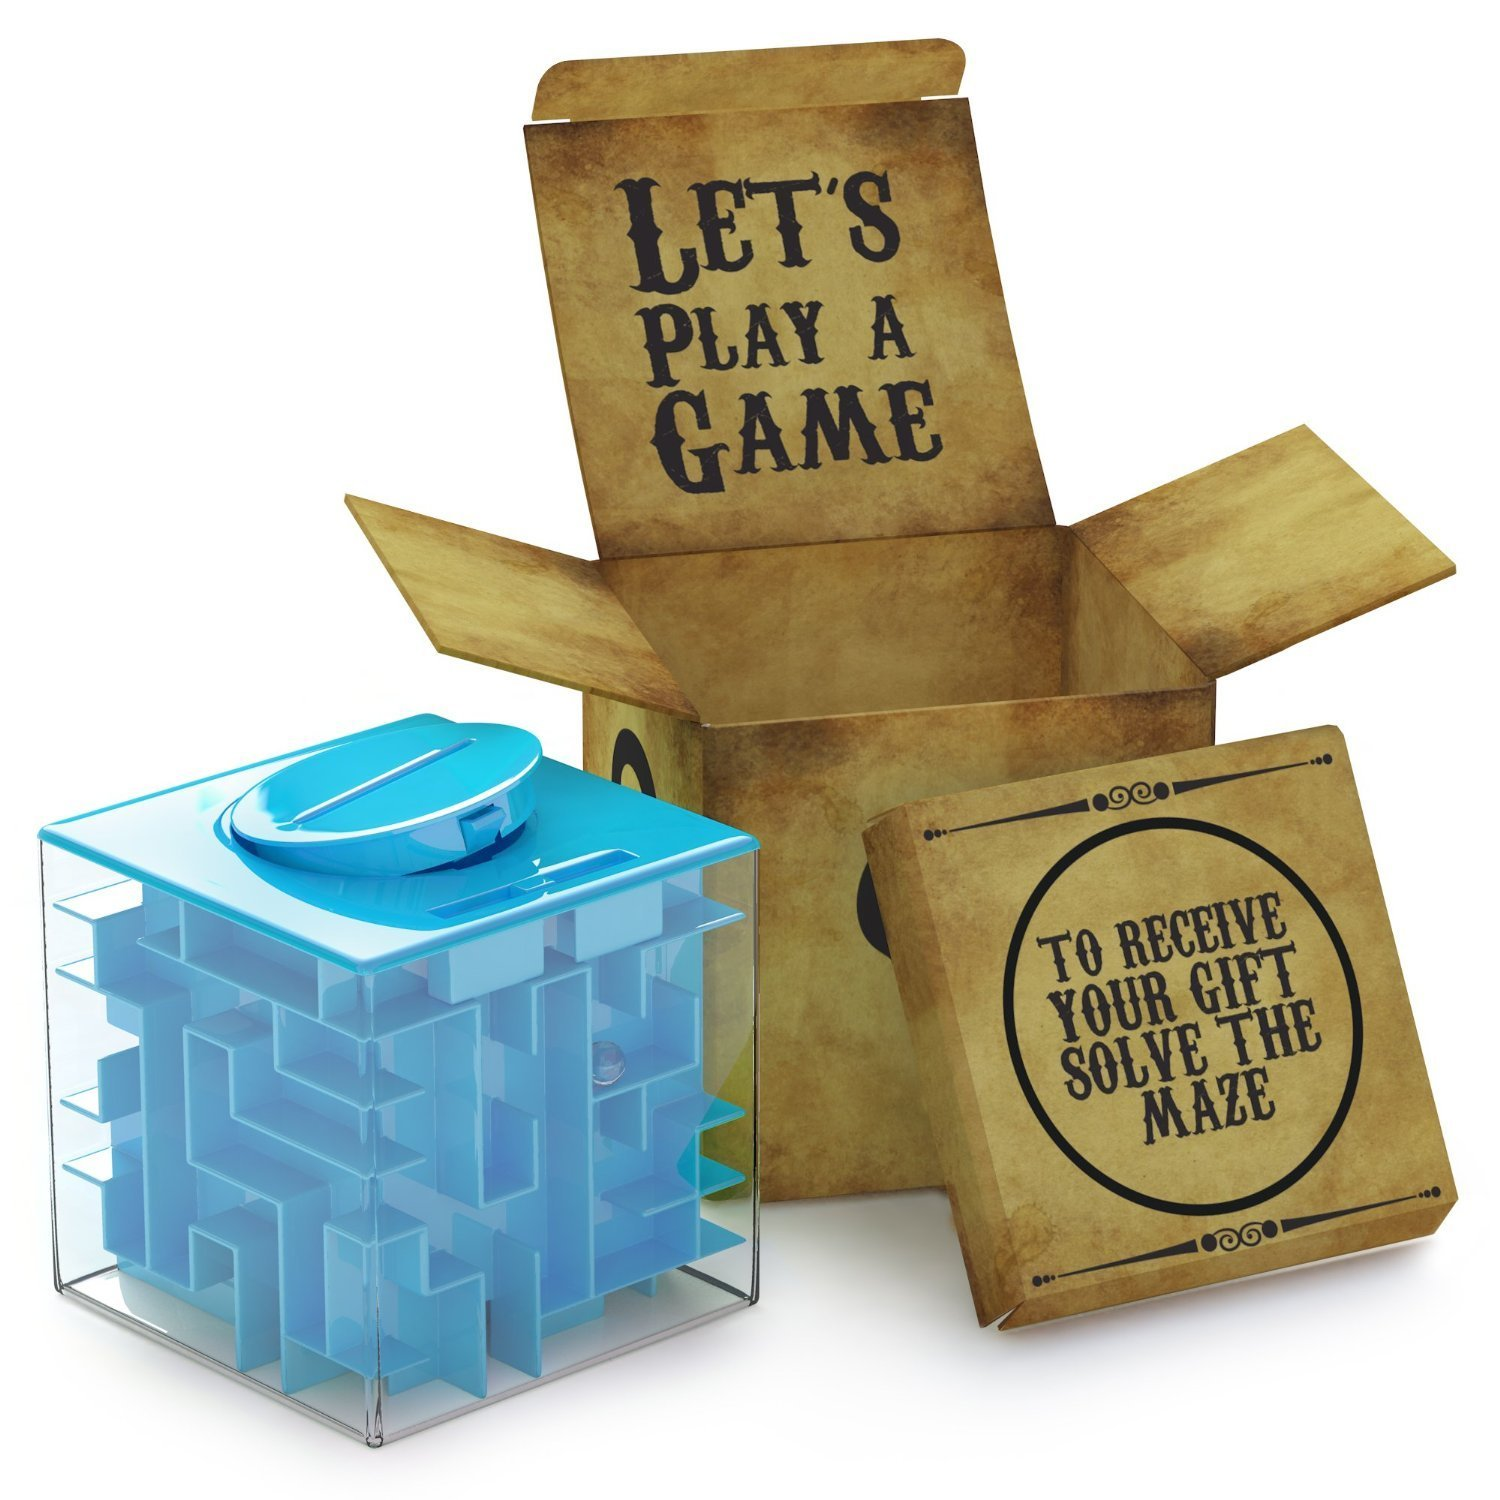 Money Maze Puzzle Box For Kids and Adults Unique Give Gifts Fun